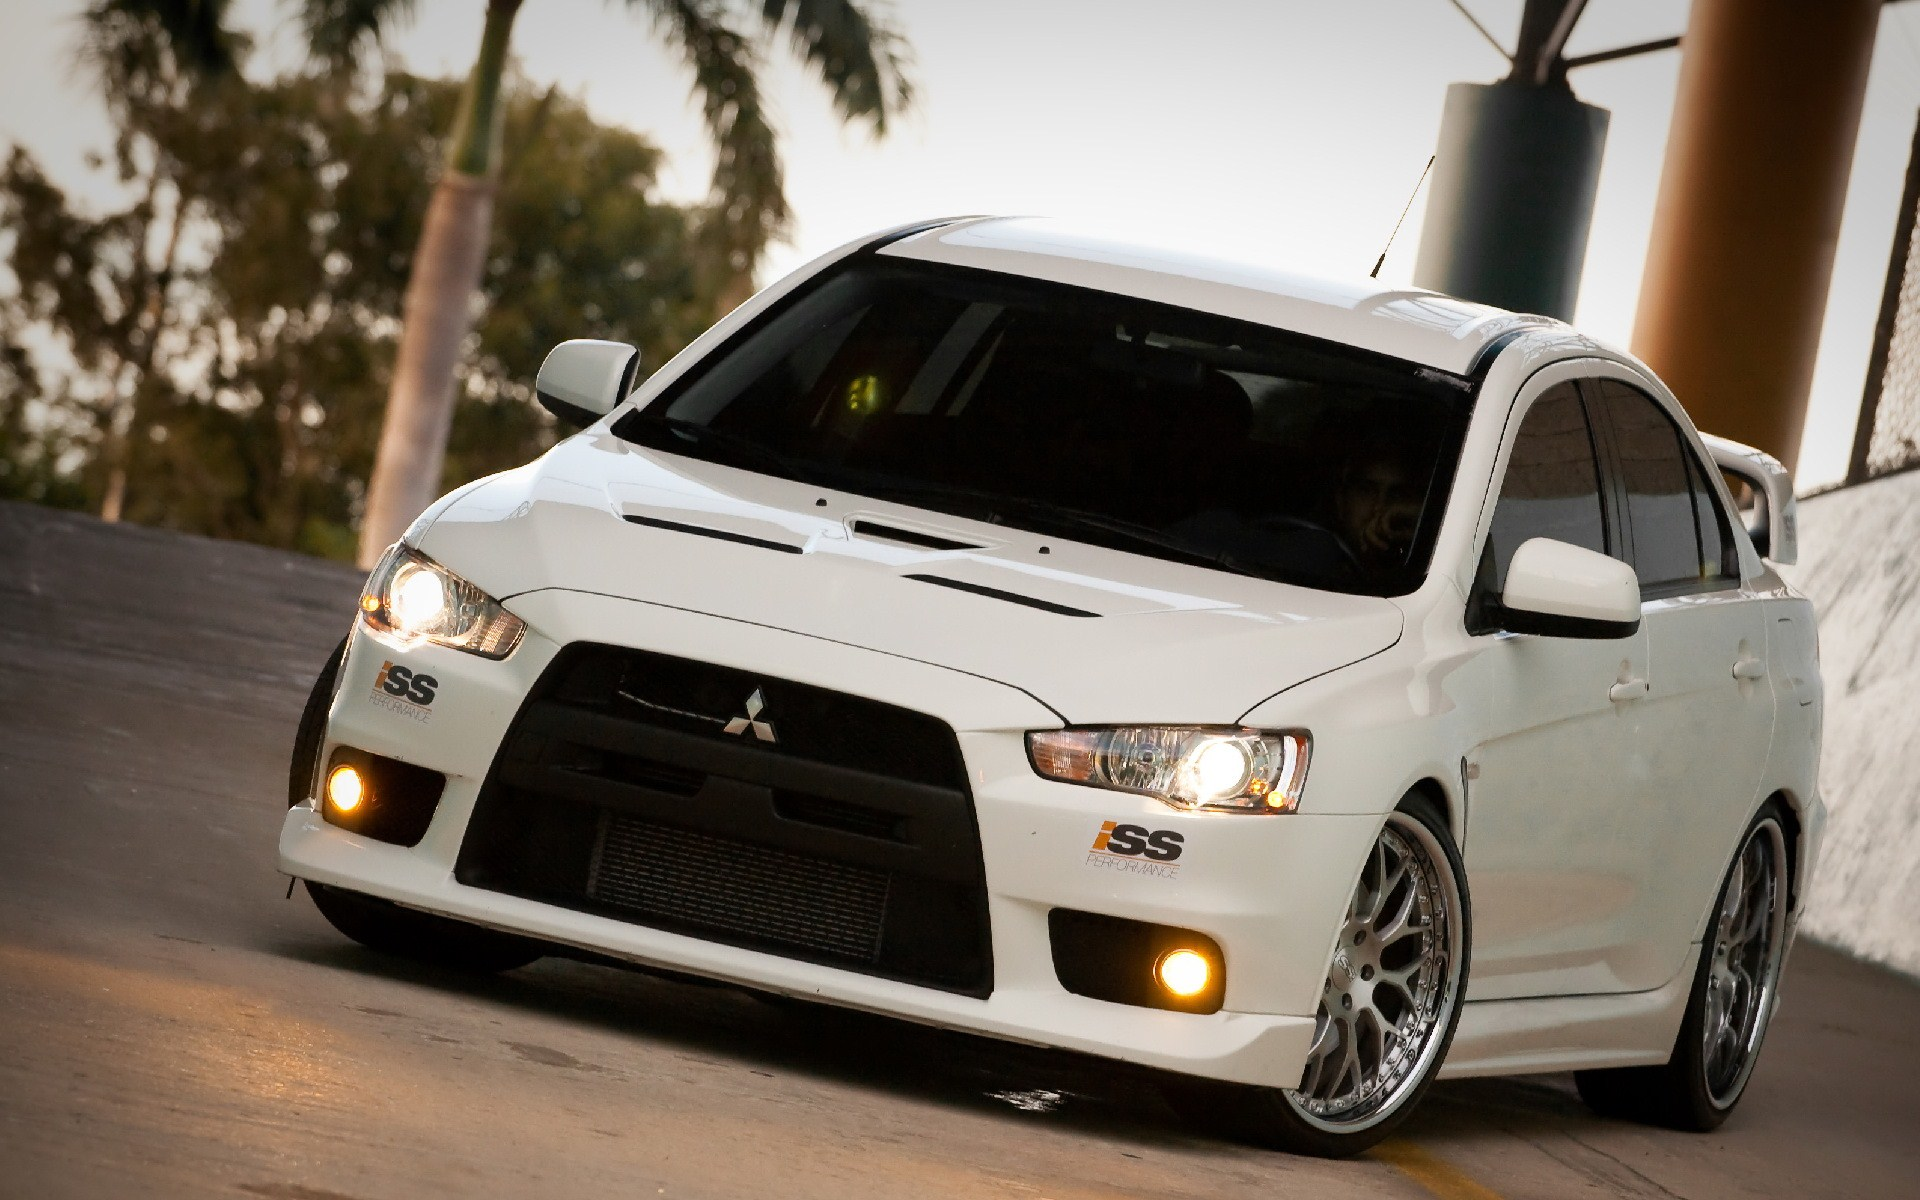 Awesome Mitsubishi Lancer Pics | Mitsubishi Lancer Wallpapers